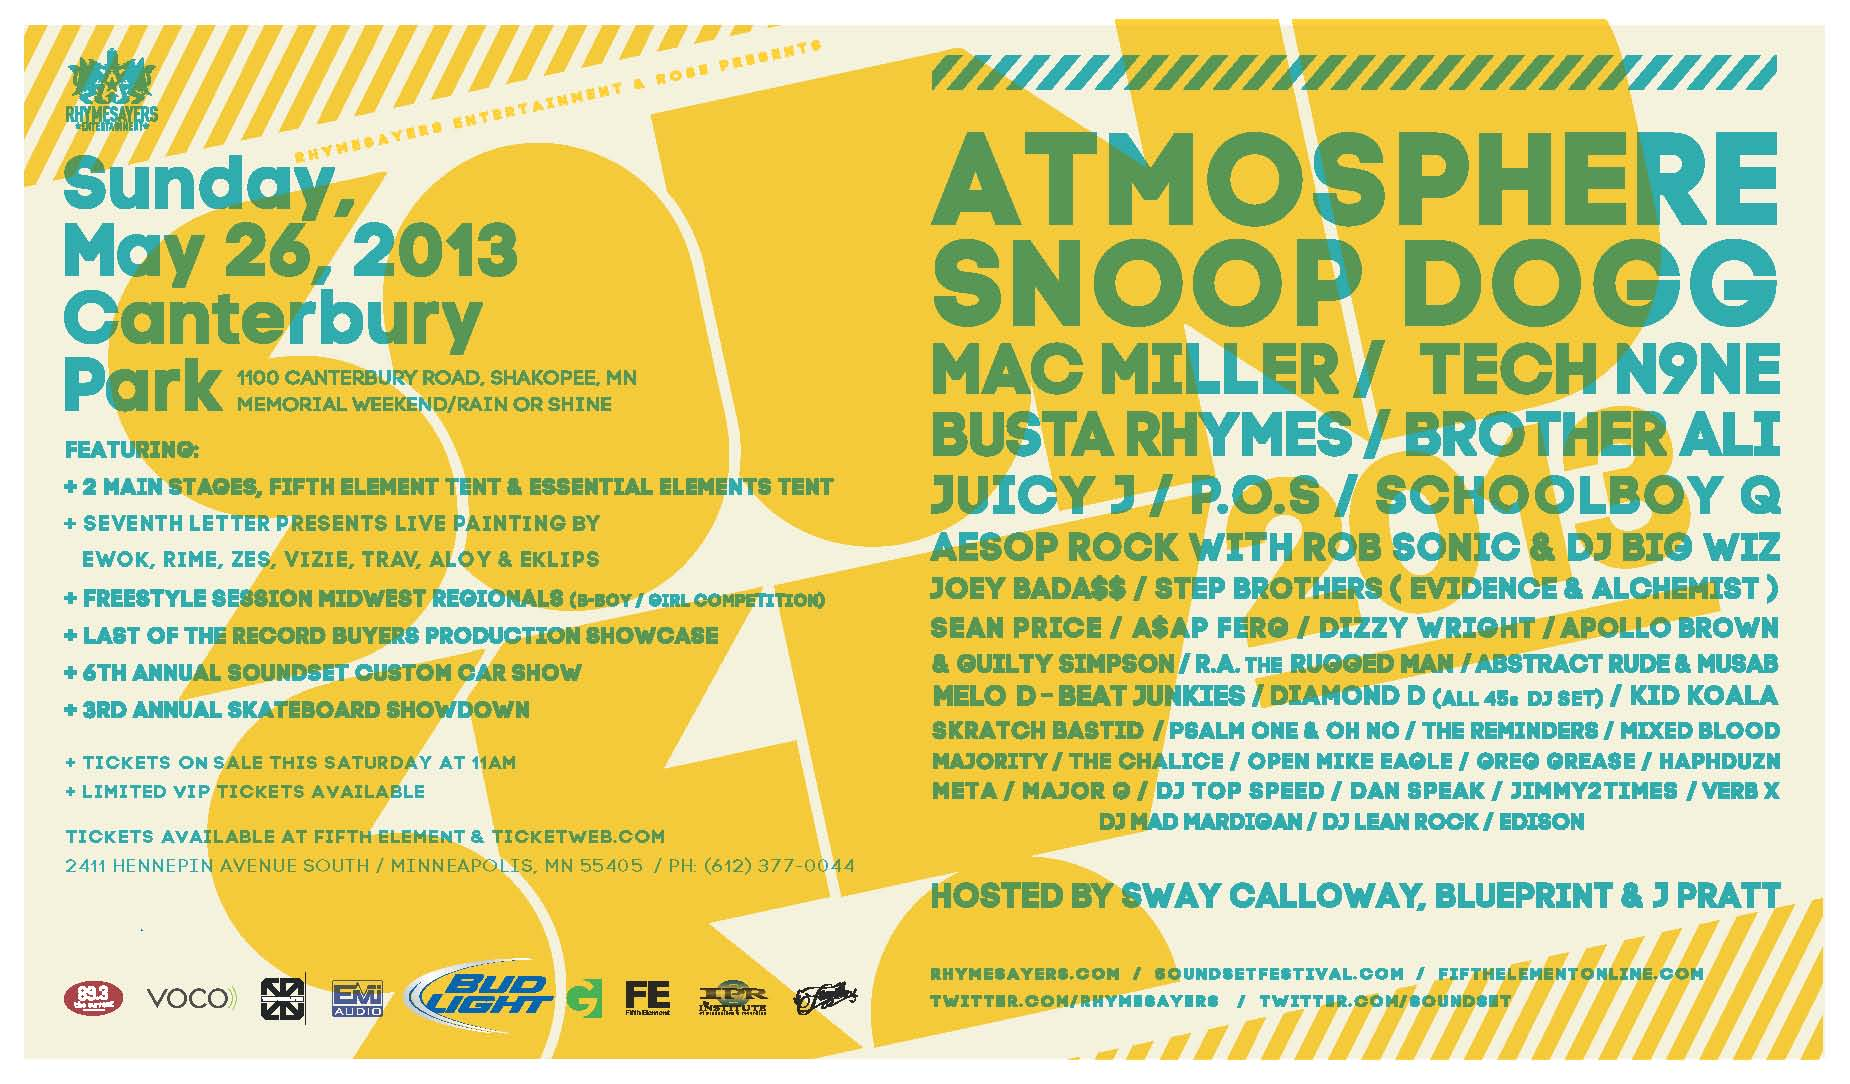 Soundset 2013 Lineup (includes Atmosphere, Snoop Dogg, Mac Miller, Busta Rhymes, Tech N9ne, and more)